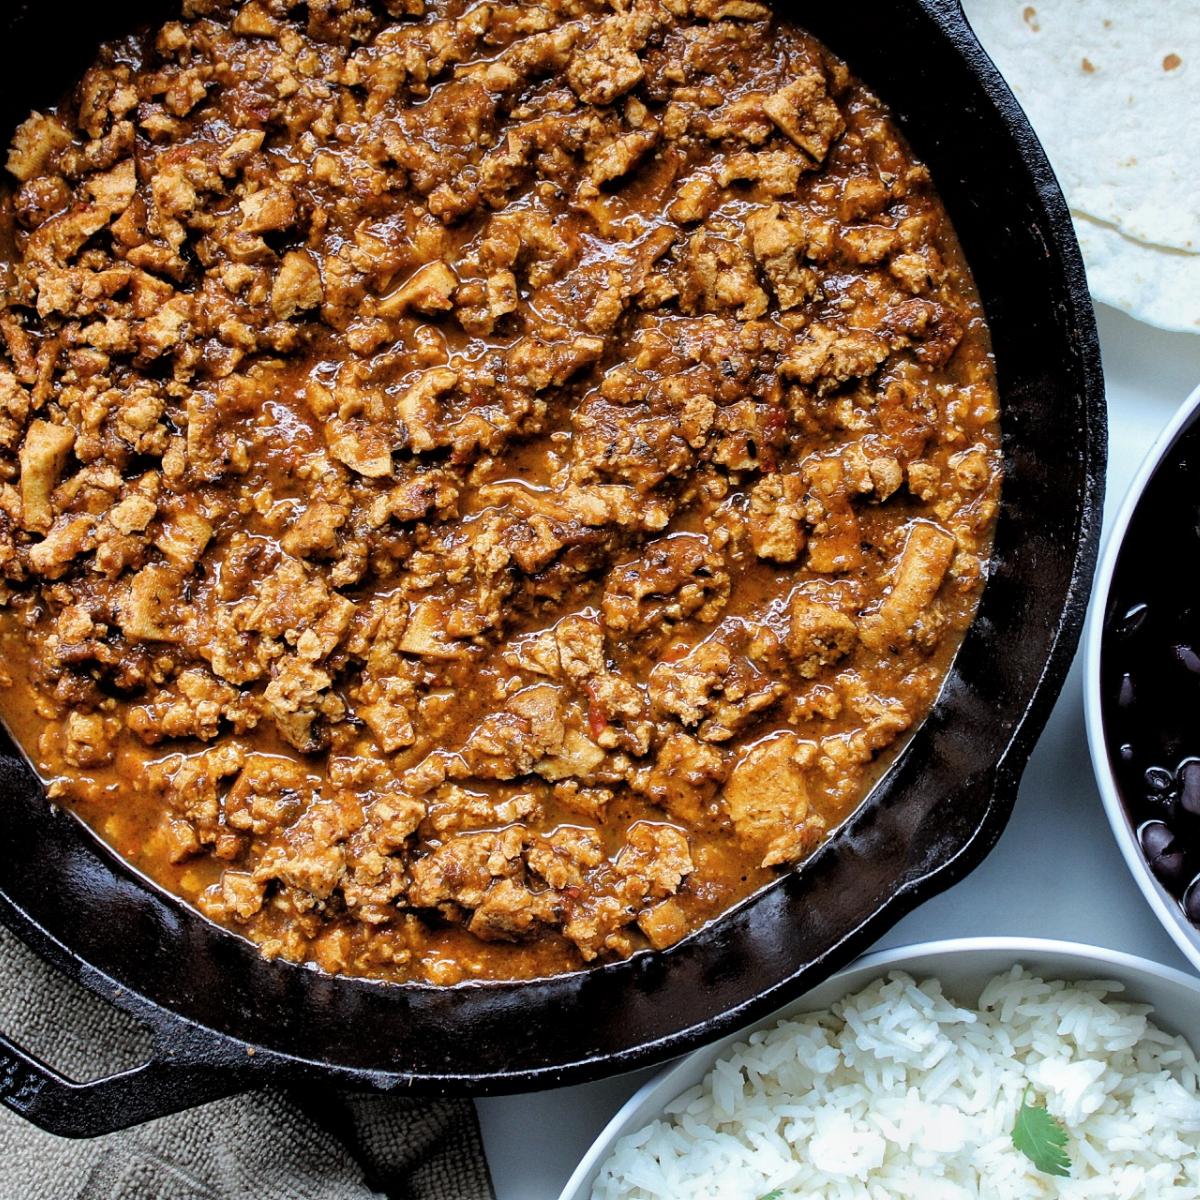 Chipotle-inspired sofritas in a cast-iron pan with a side of rice, beans, and tortillas